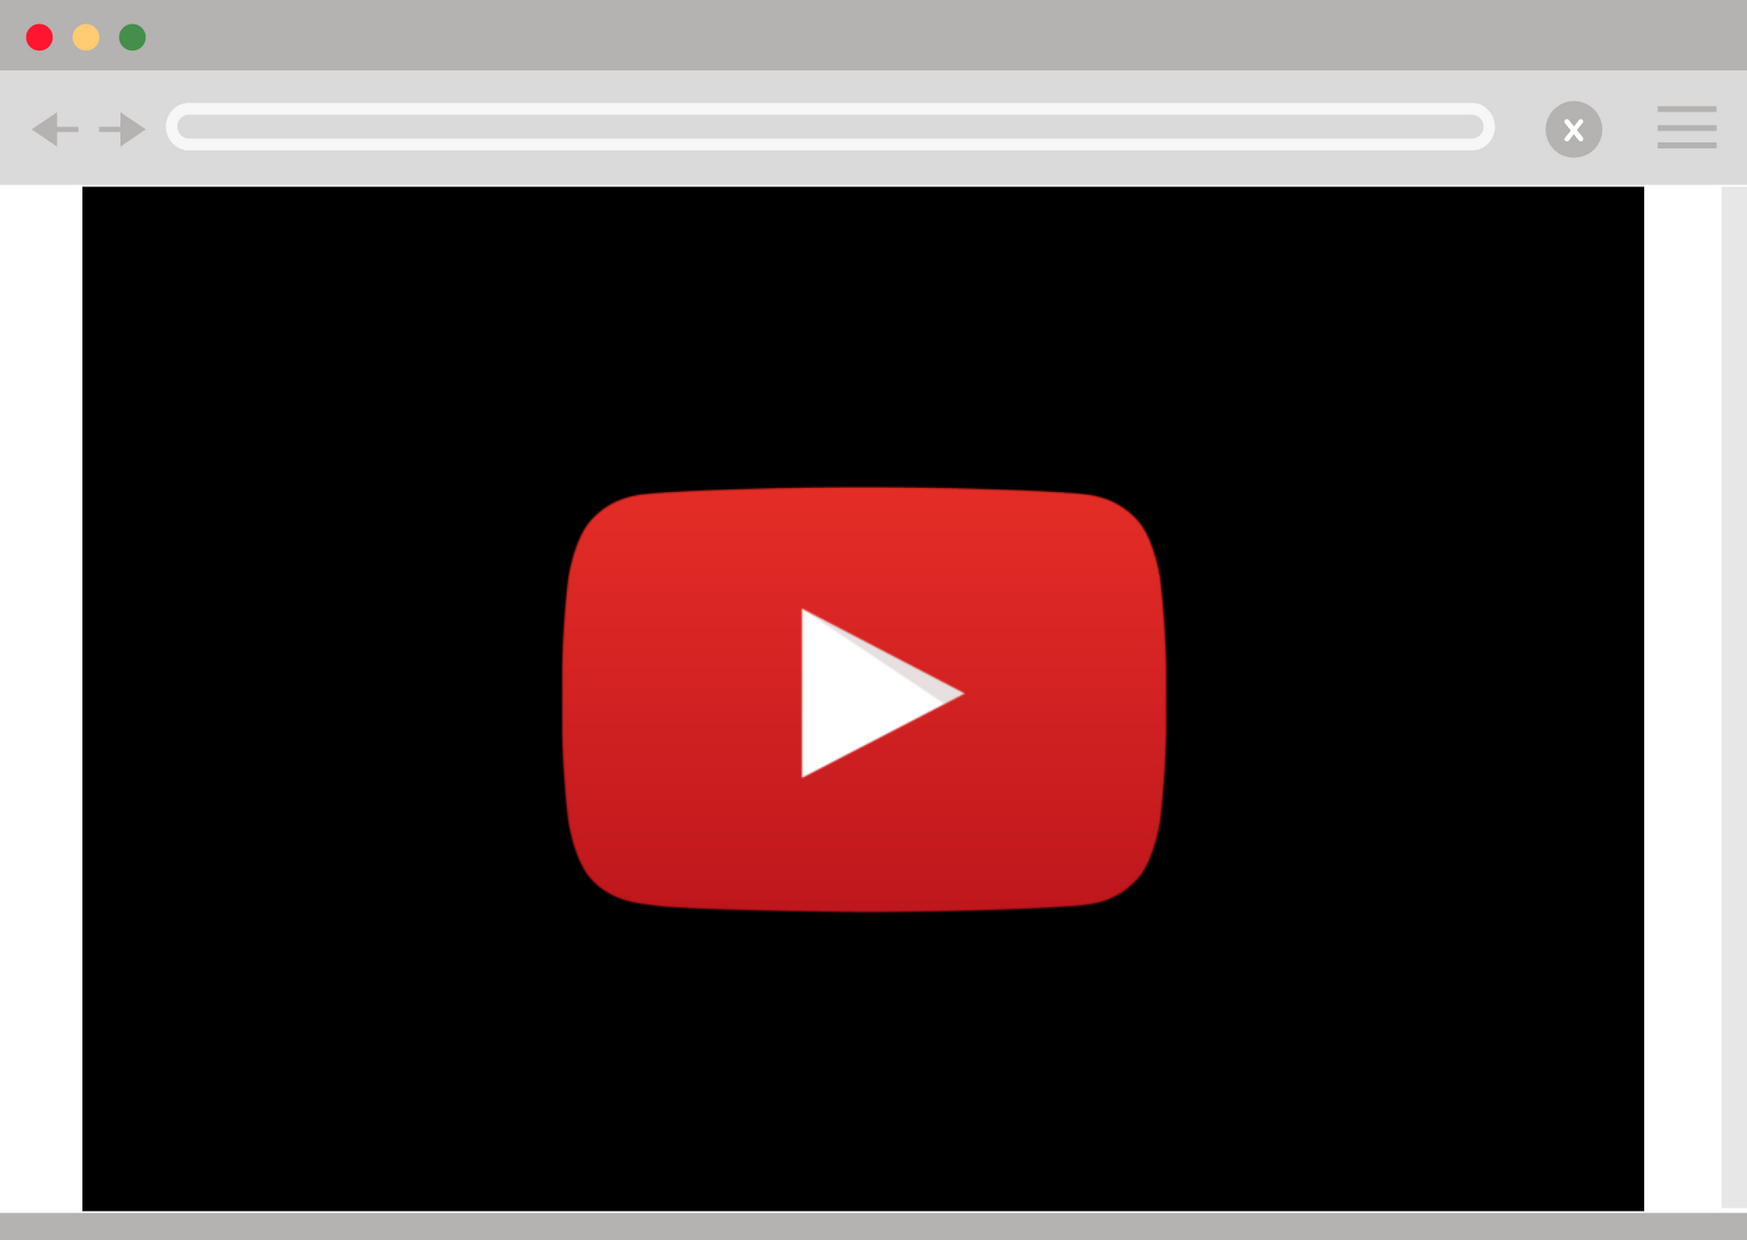 Youtube video on browser